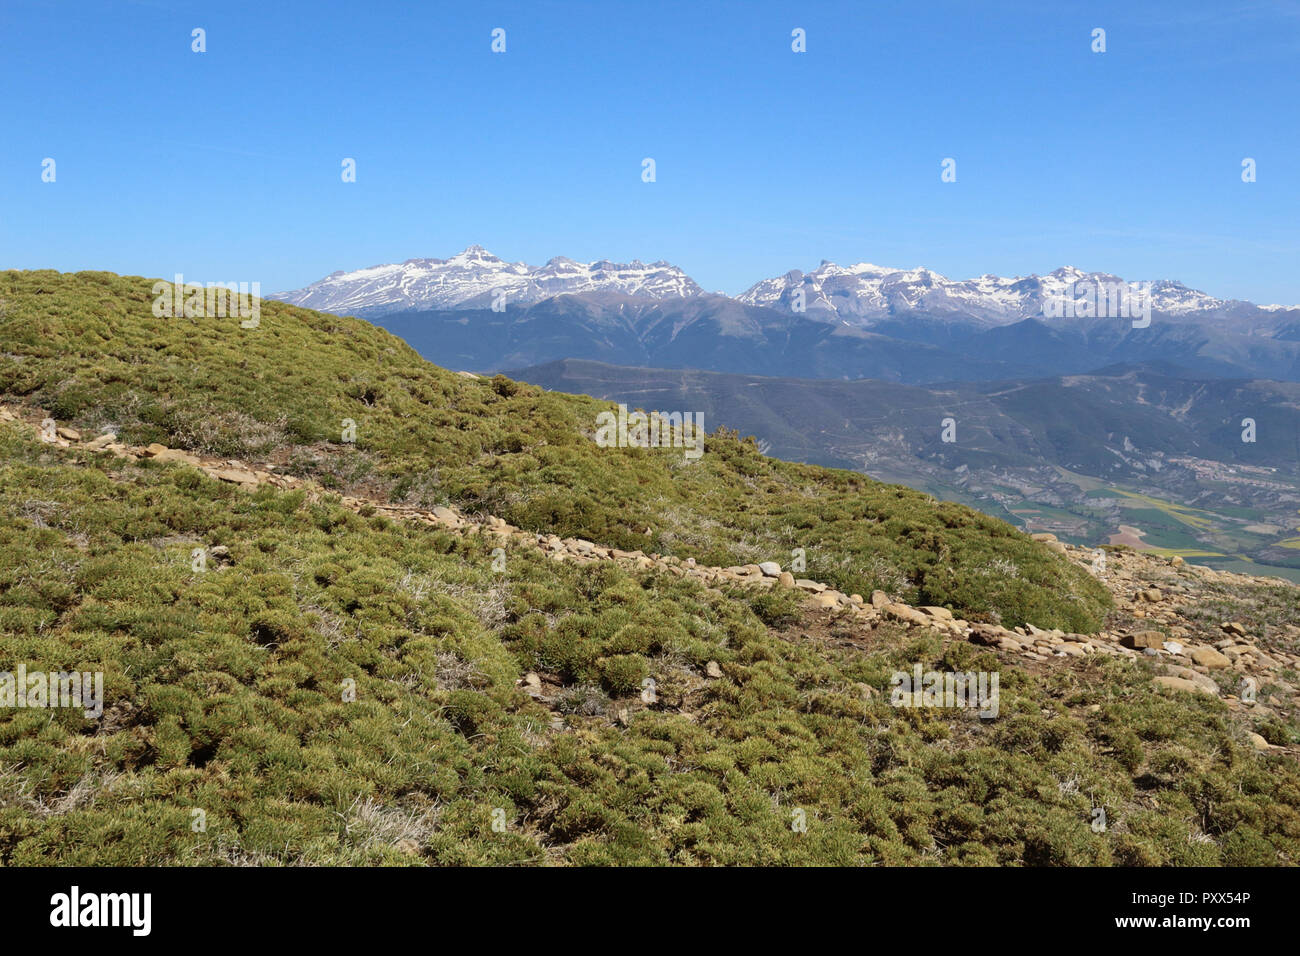 A landscape of snow-clad Pyrenees mountains and a wide valley with blue cloudy sky and some bushes in Peña Oroel, Aragon region, Spain - Stock Image